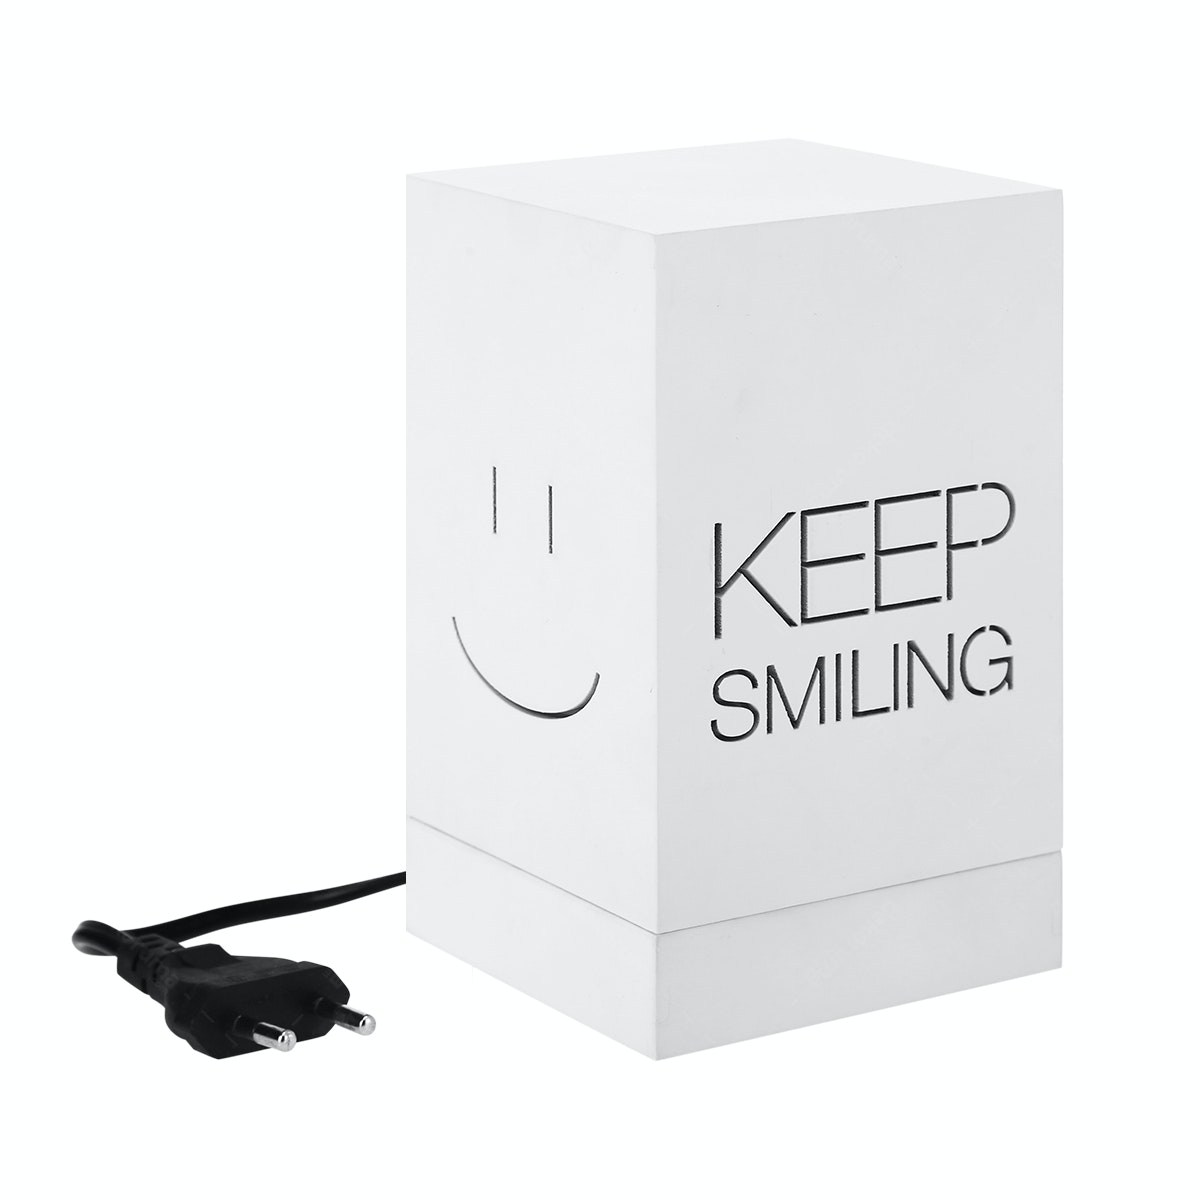 Zeven Lantern Box - Keep Smiling - Warm White Lamp